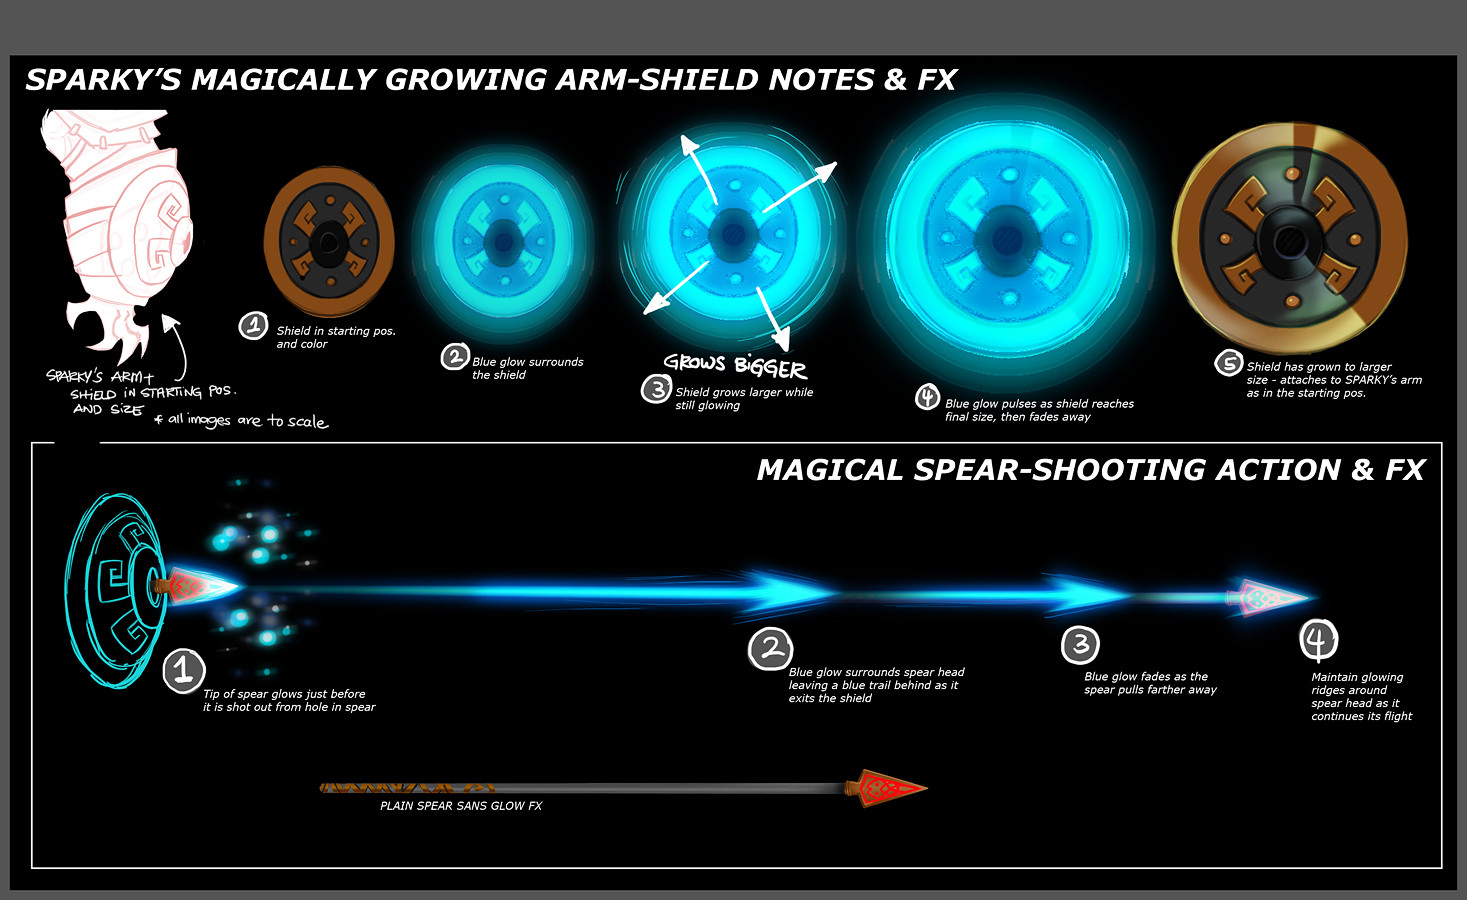 Jose cua sparky weapons2